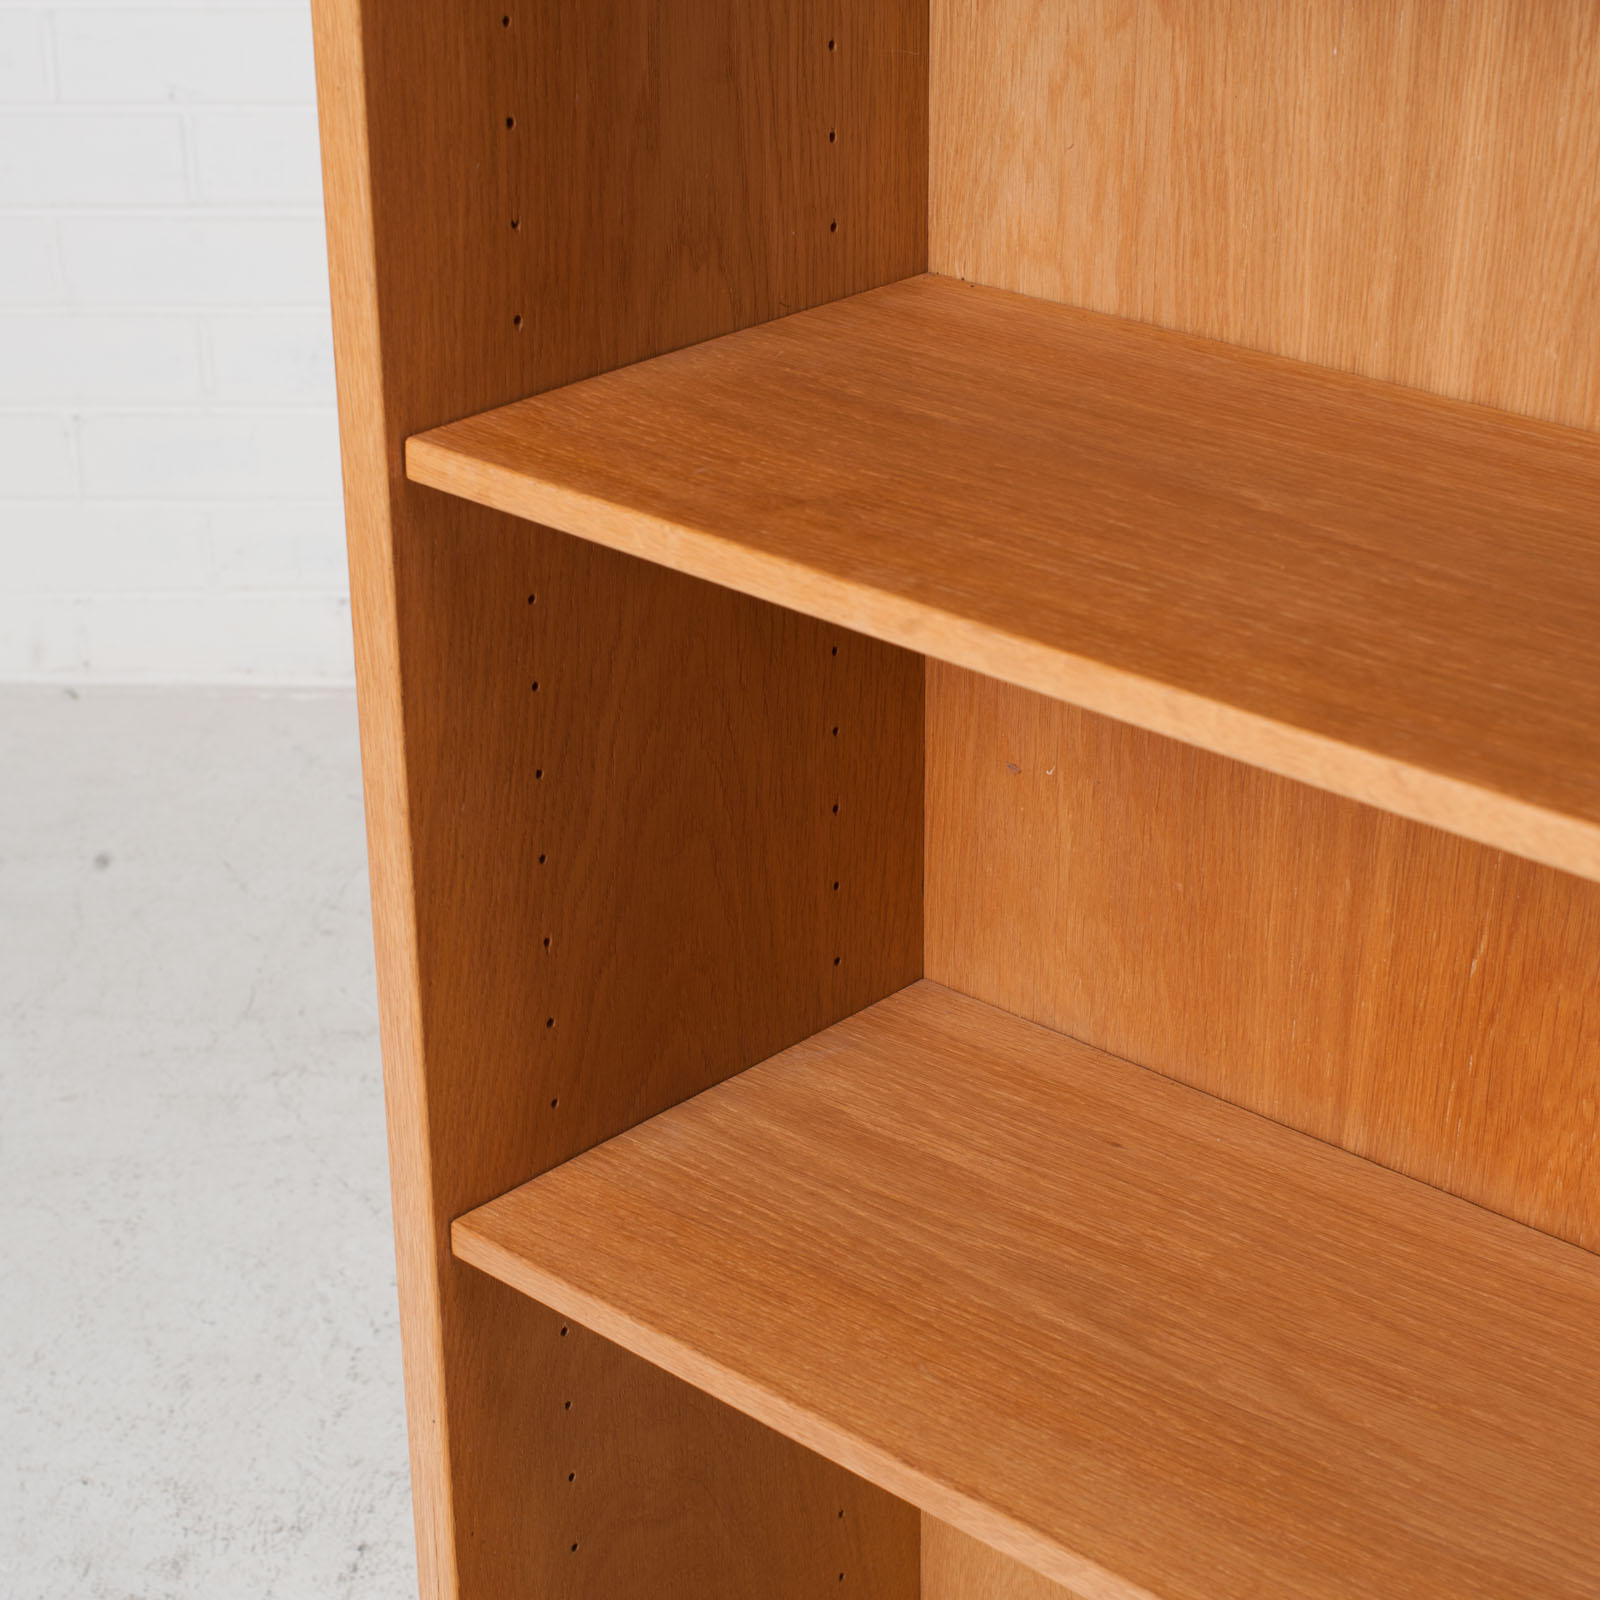 Bookcase By Borge Mogensen In Oak 1960s Denmark 06